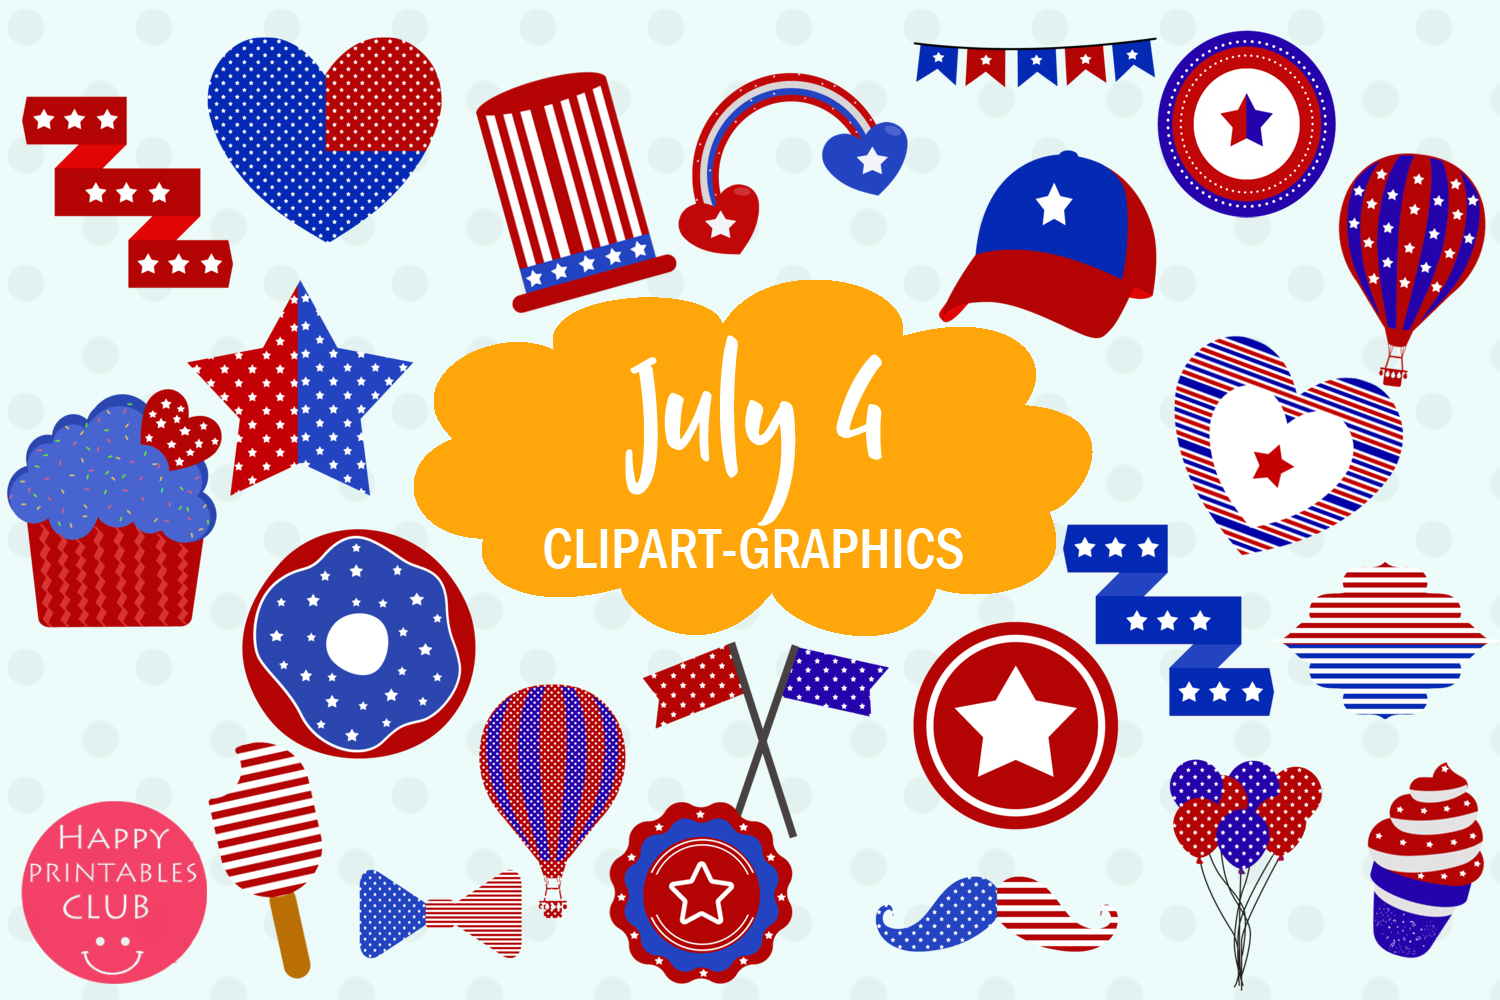 40 July 4 Clipart Graphics-Patriotic Clipart-4 July Clipart example image 1